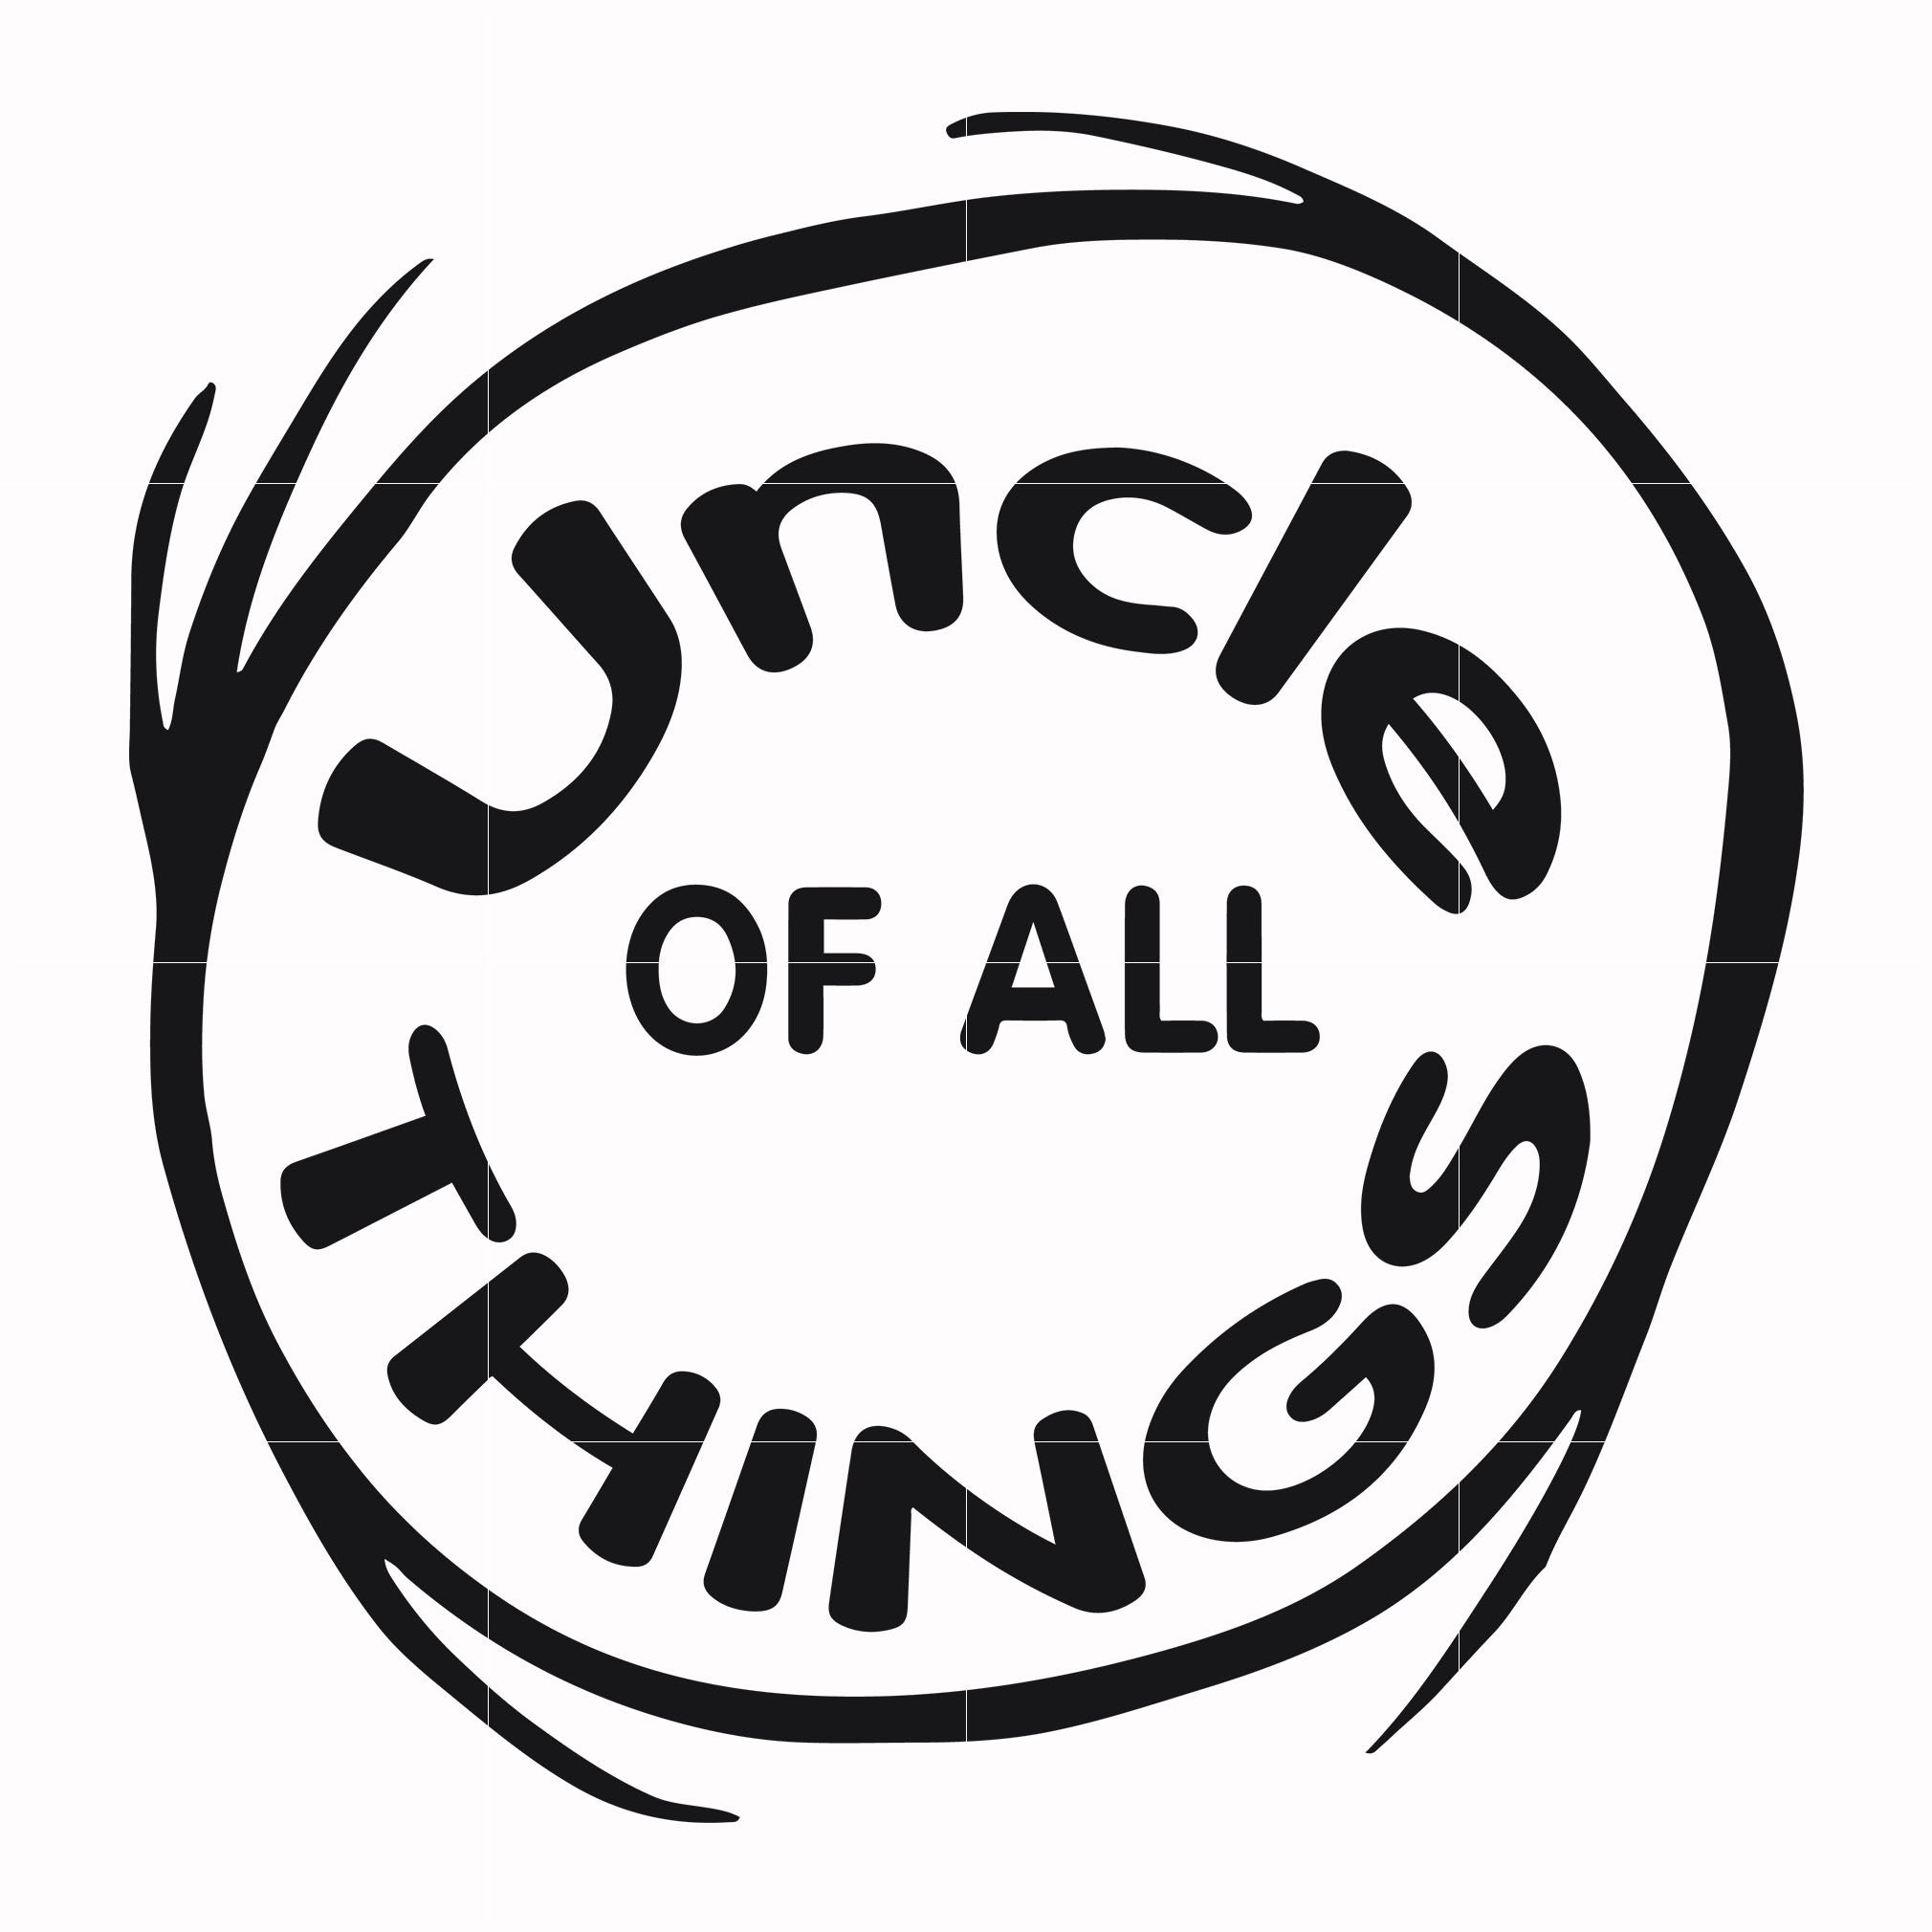 Uncle of all things, dr seuss svg, dr seuss quotes, digital file